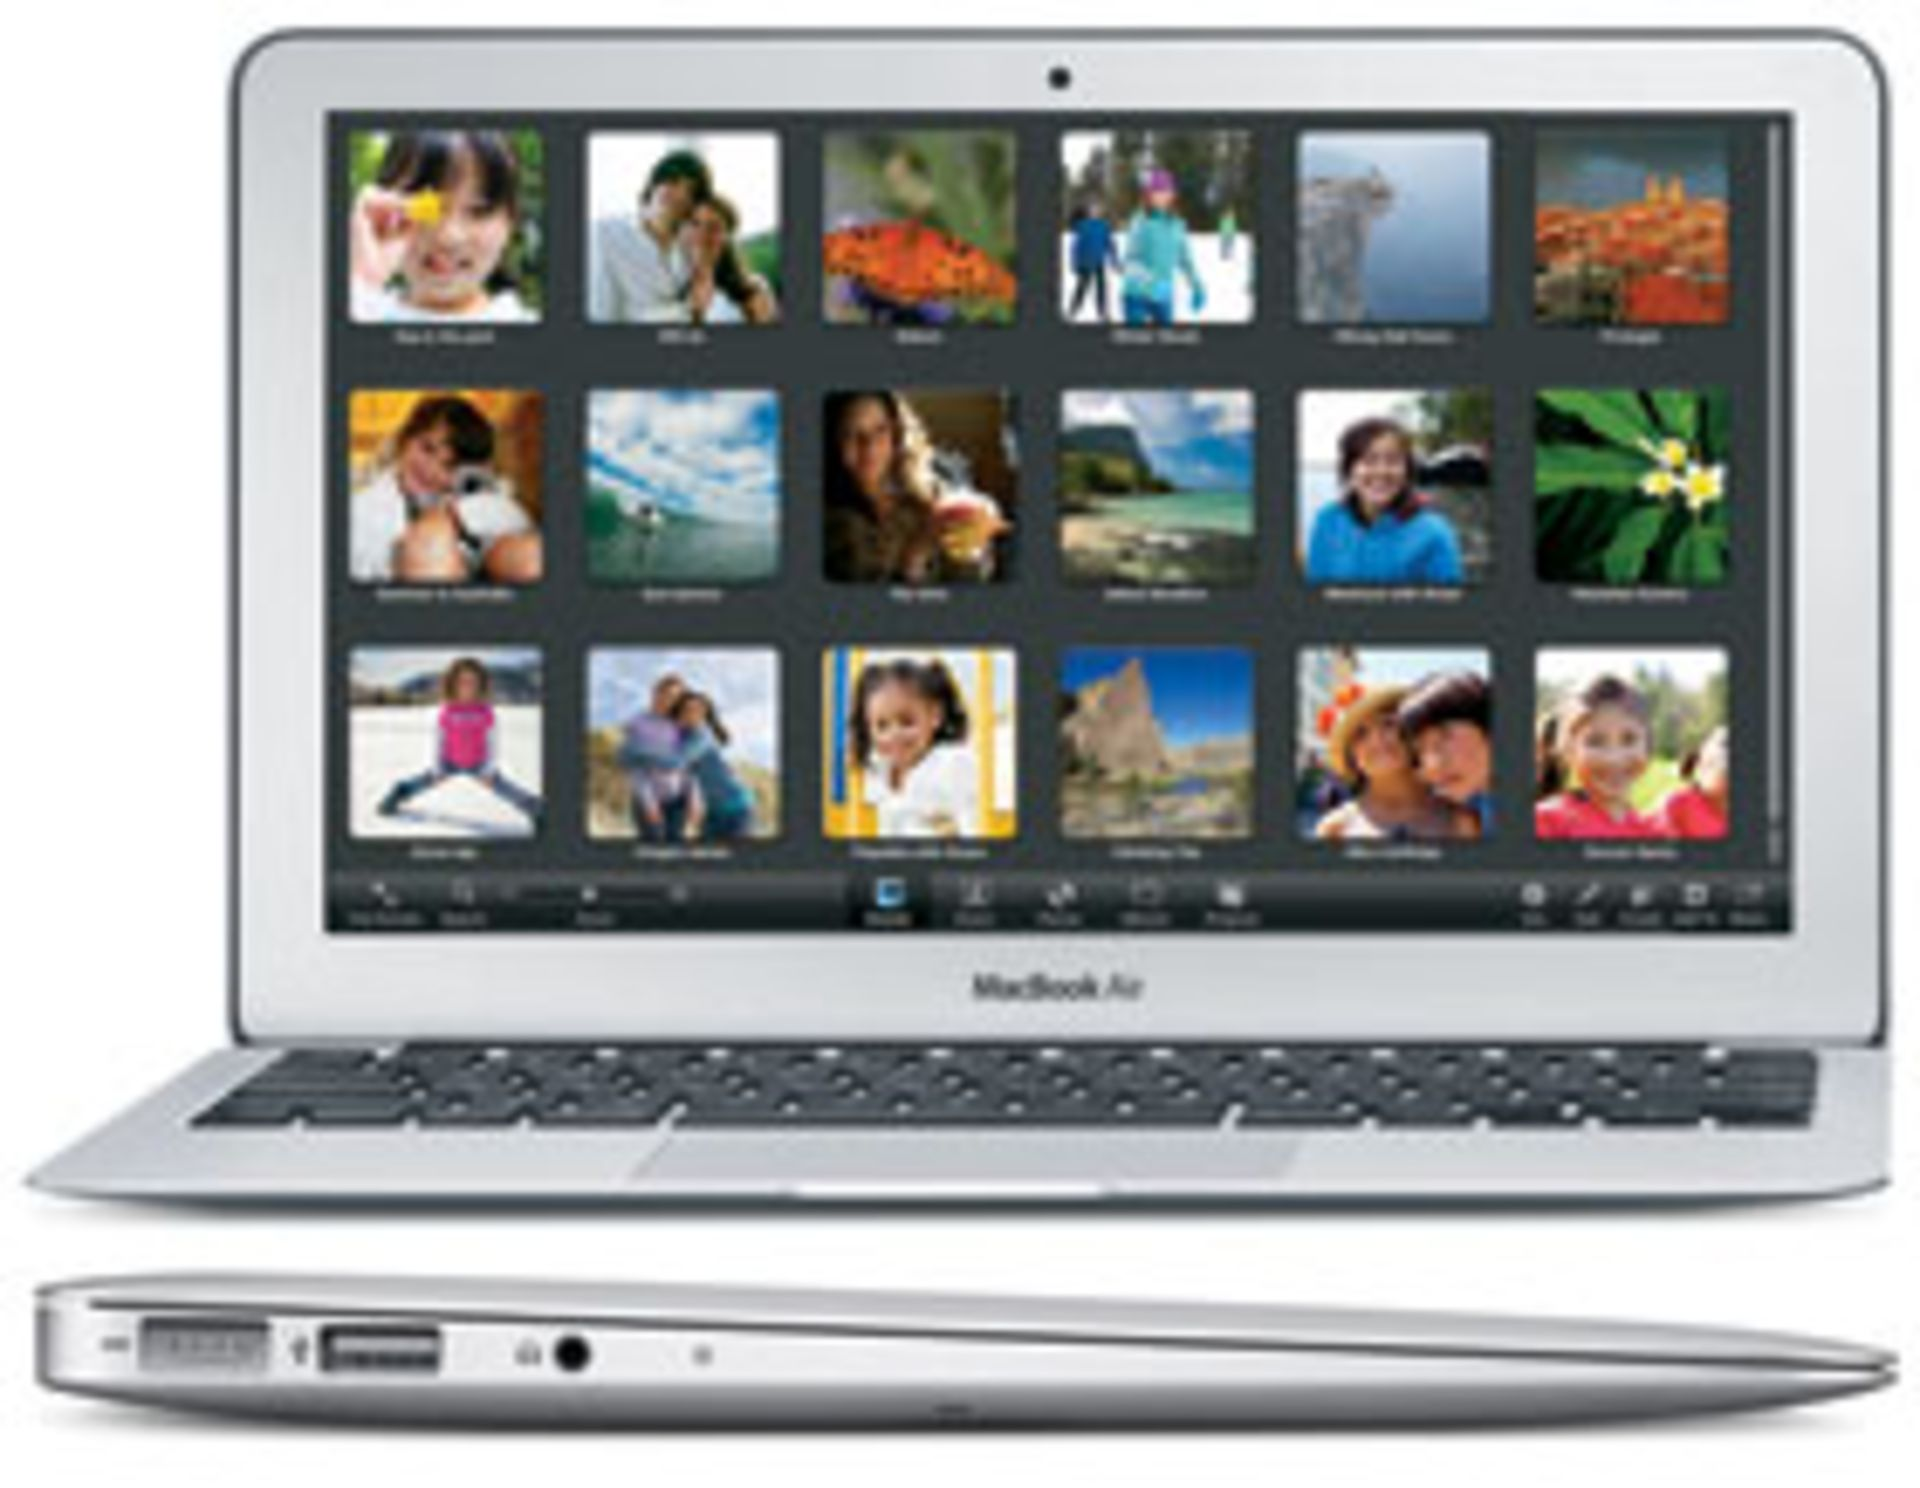 Lot 60006 - V Grade B Macbook Air 11.6 Inch Core 2 Duo - 64GB SSD - A1370 - Available Approx 7 Working Days